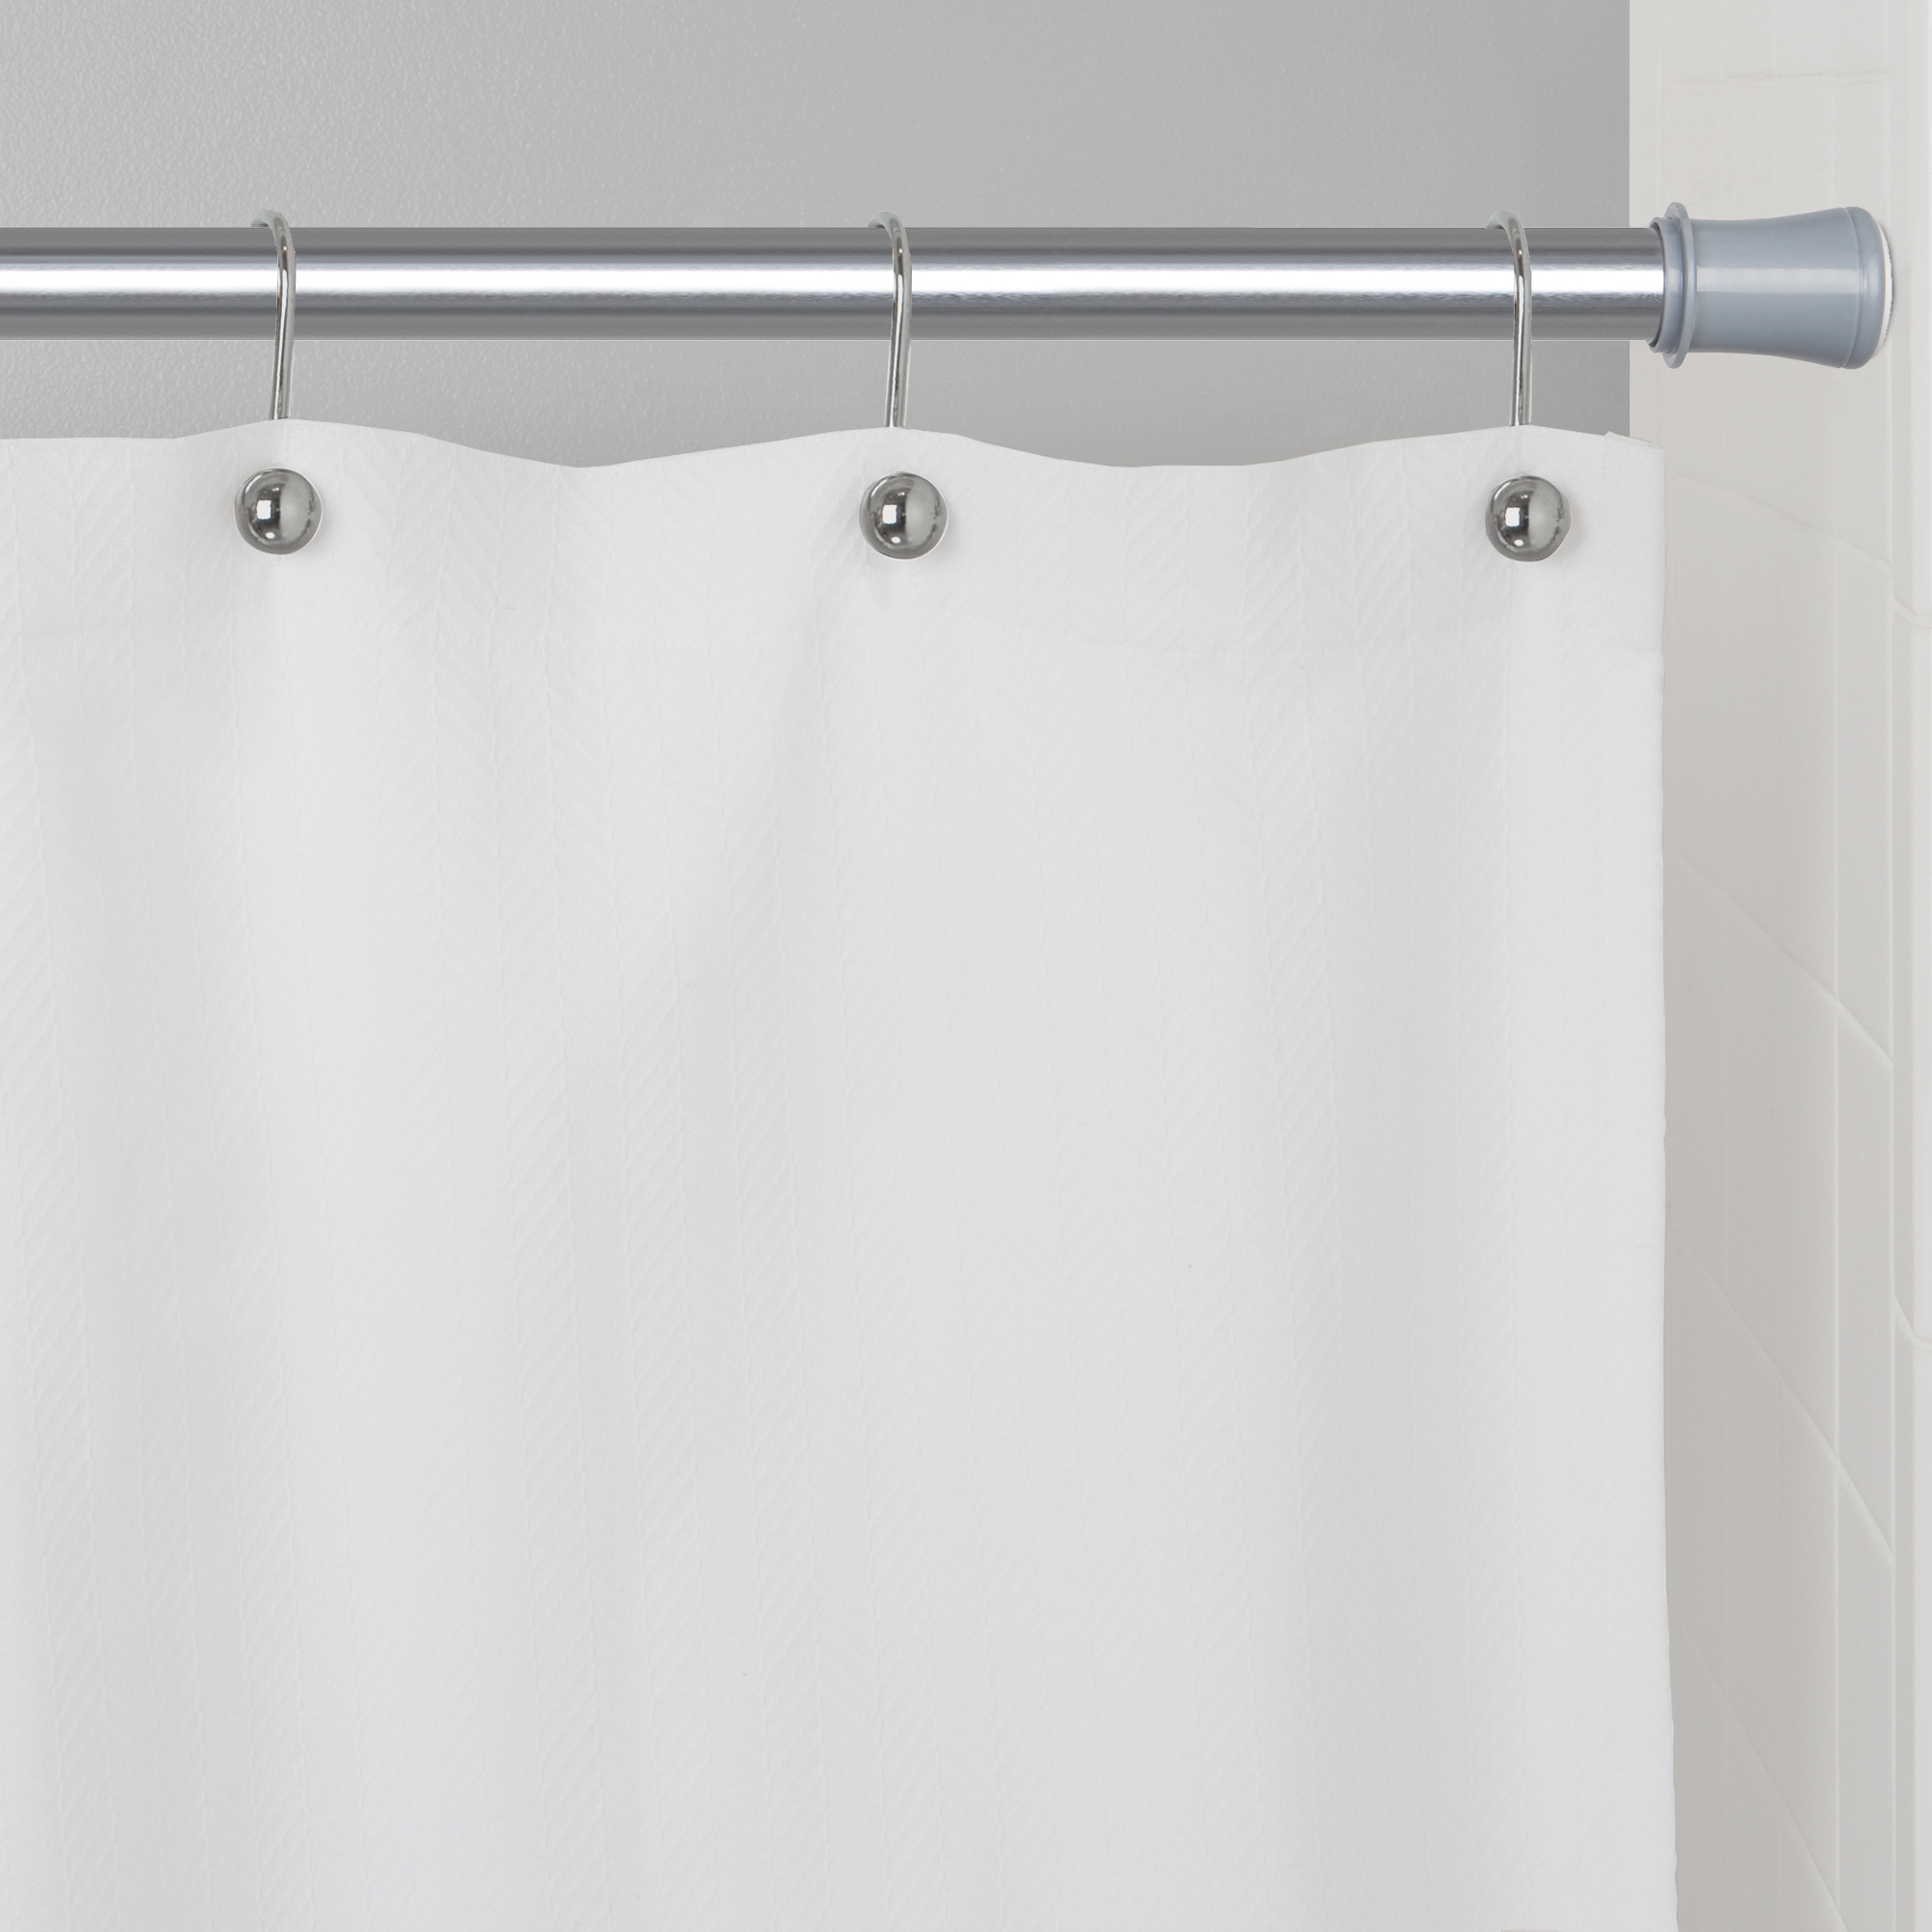 Heavy Duty Tension Shower Curtain Rod Mainstays Easy Hang Adjustable 40